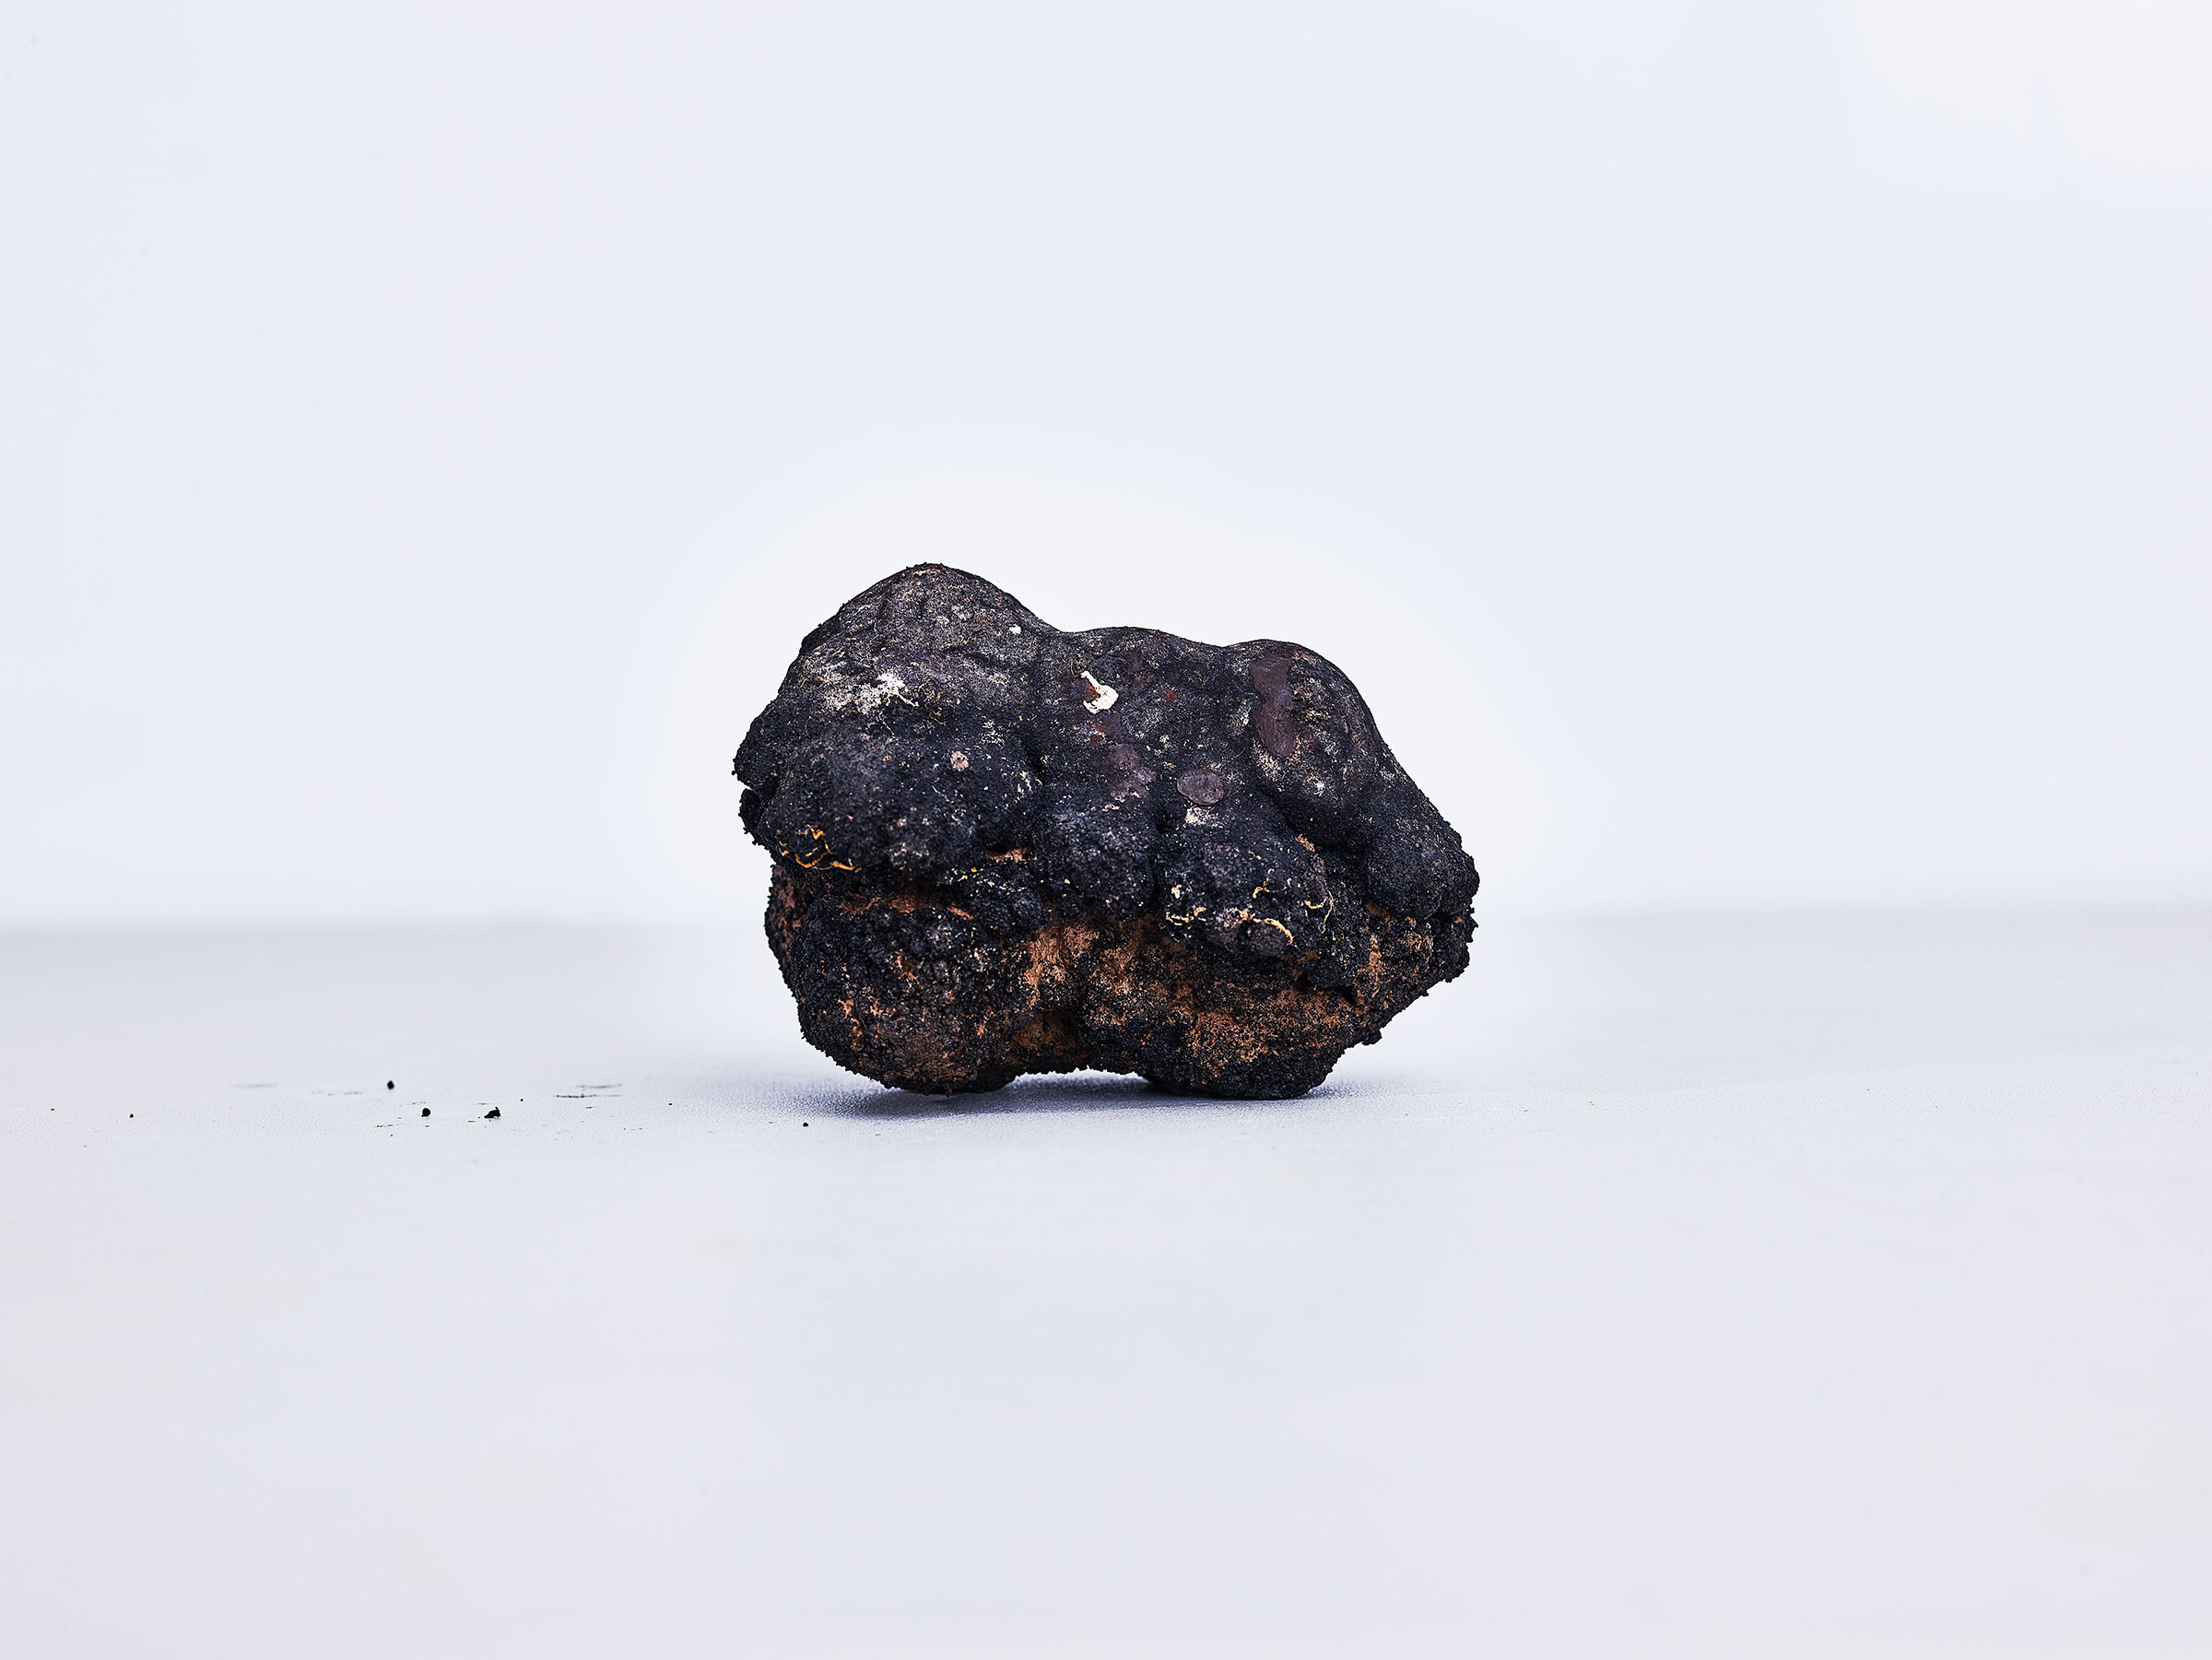 A polymetallic nodule, an amalgamation of nickel, cobalt, manganese and other rare earth metals, formed through a complex biochemical process.